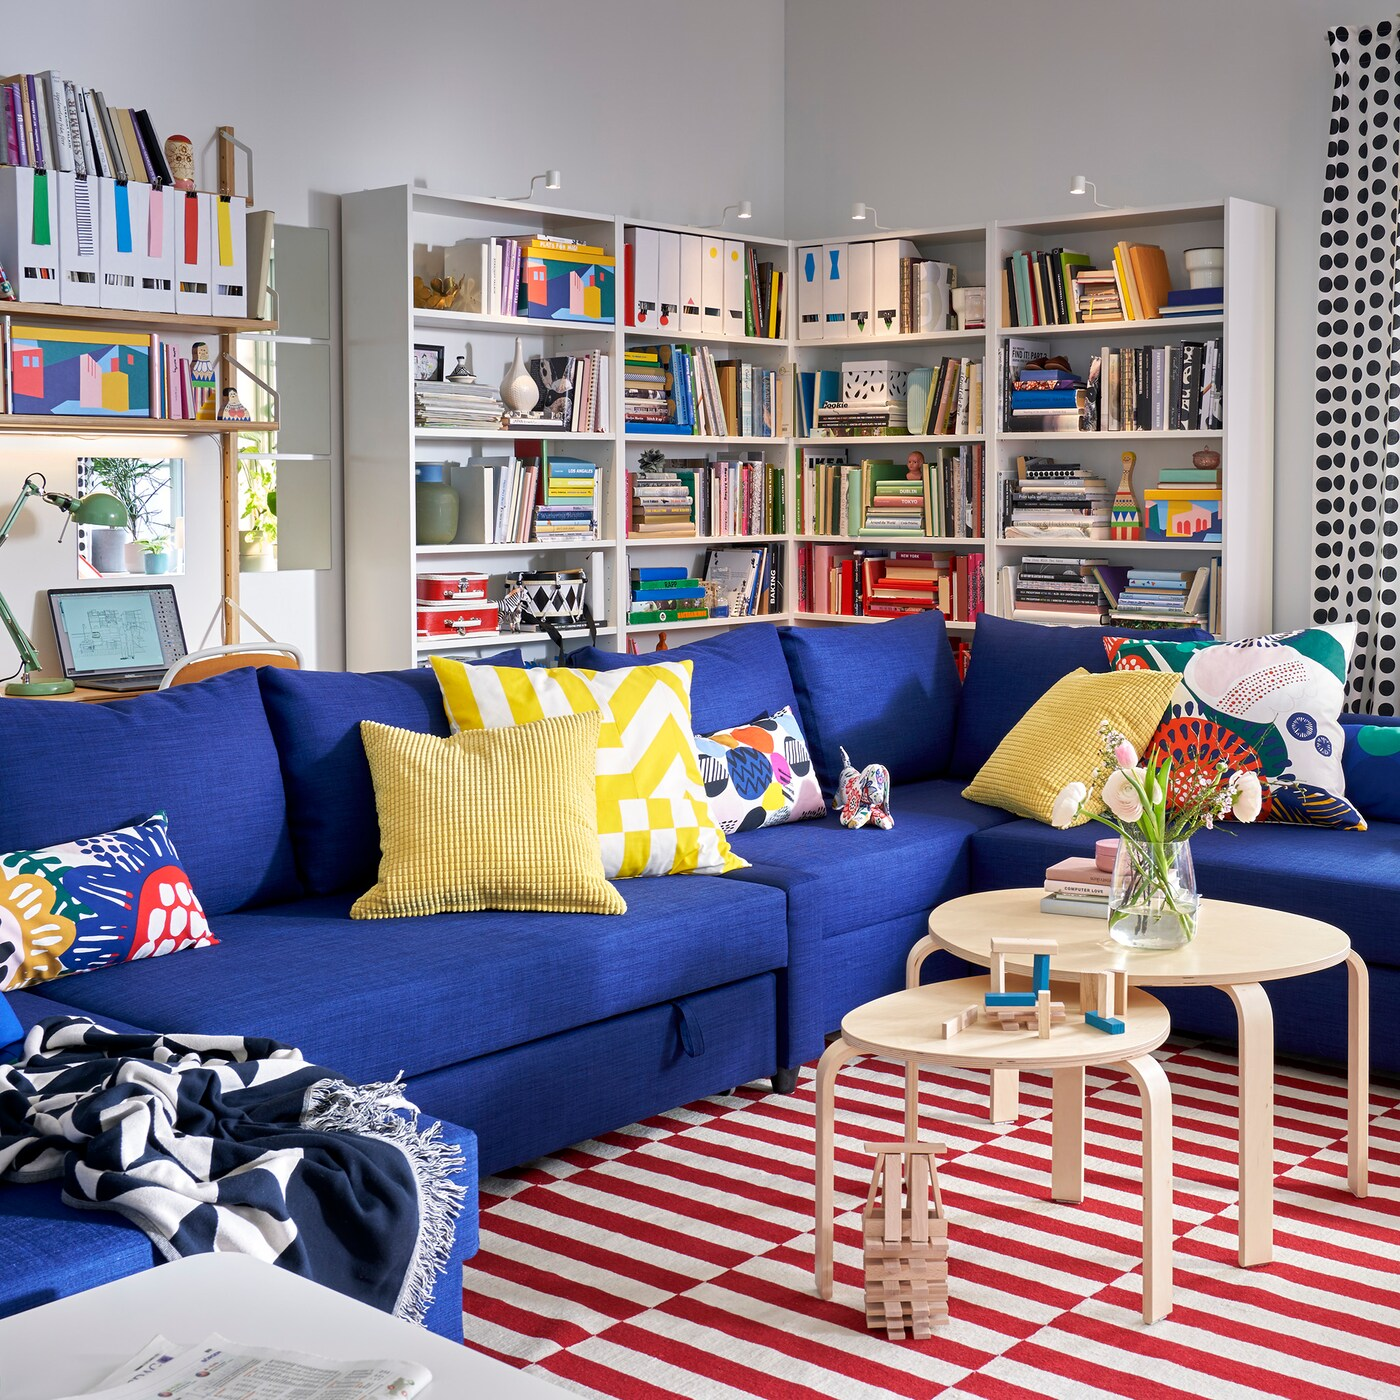 Ikea Living Room Shelving Units